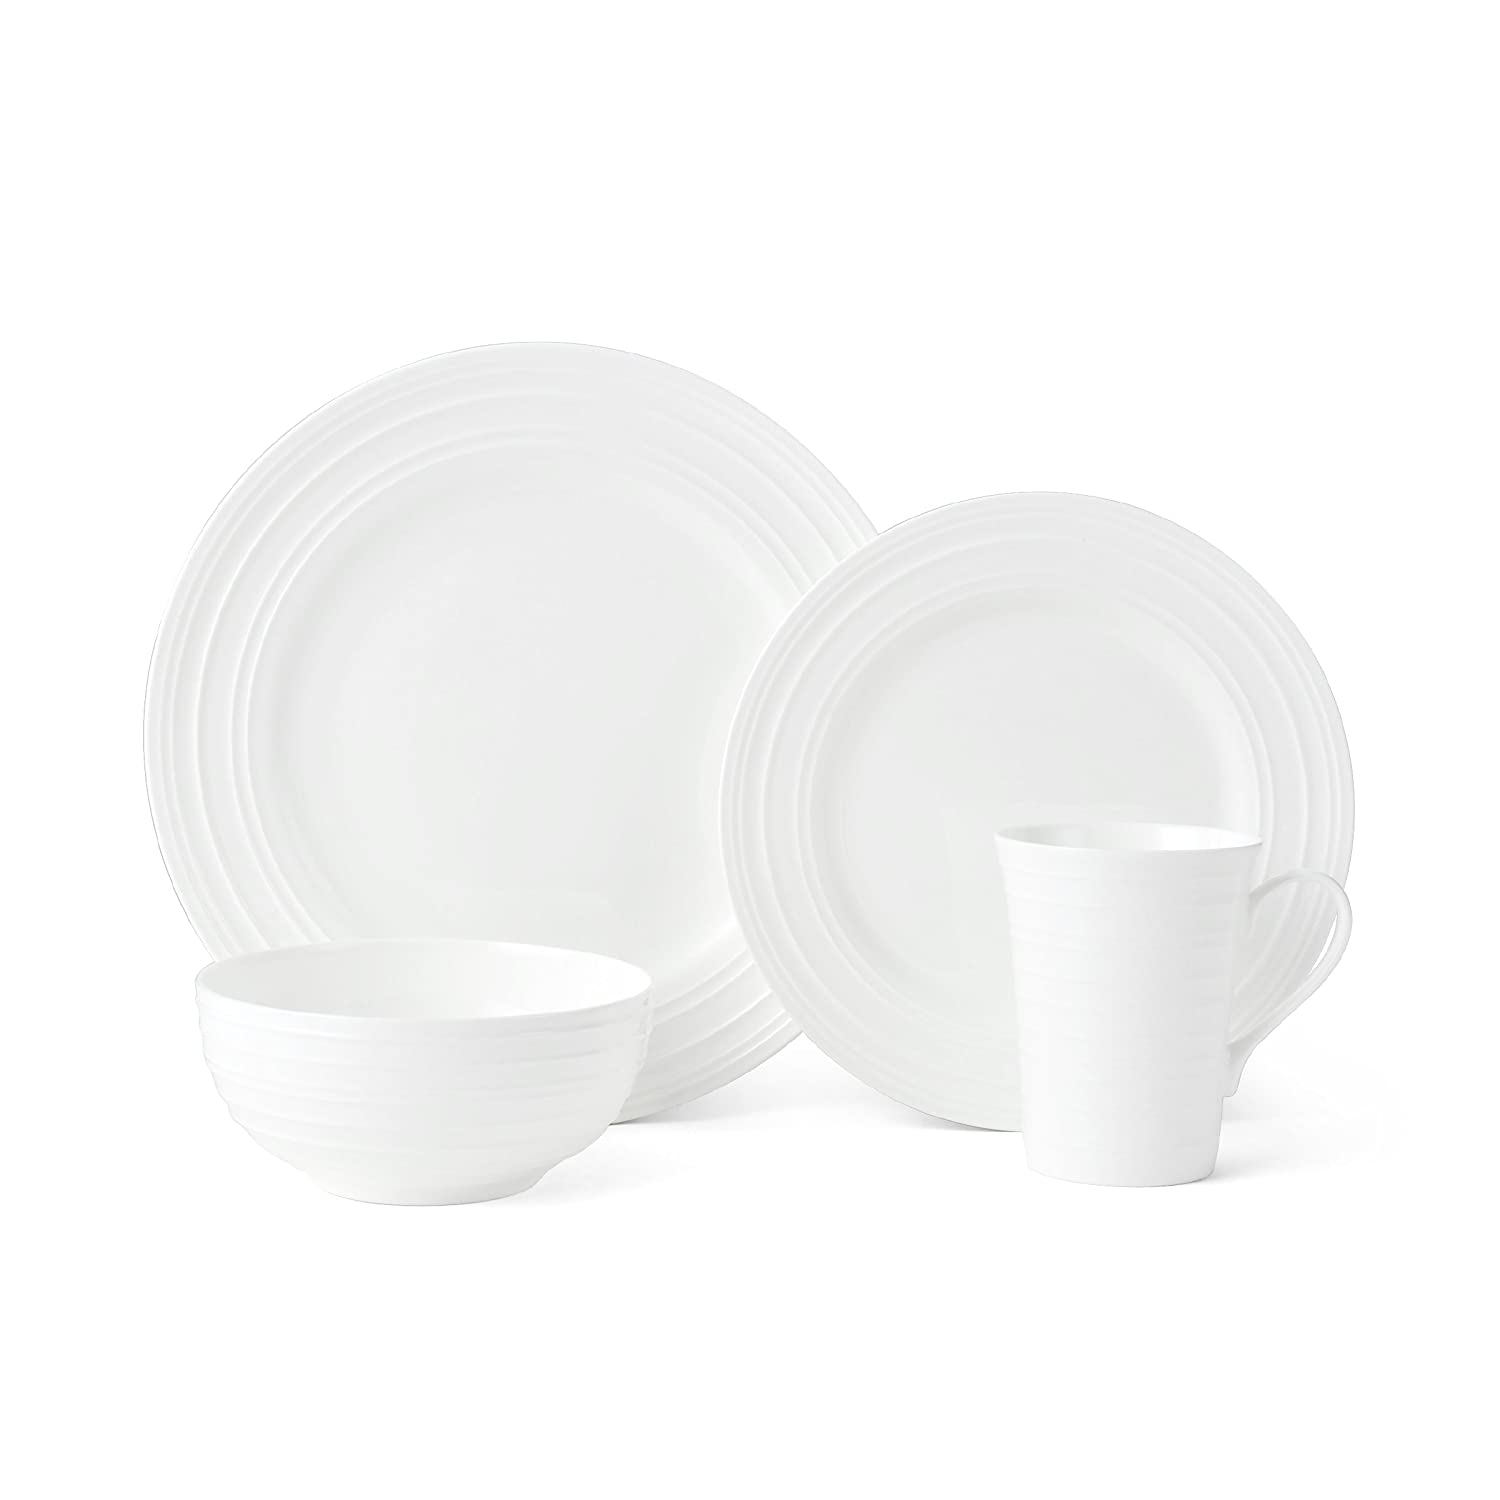 Mikasa 5224193 Ciara 16-Piece Dinnerware Set, Service for 4